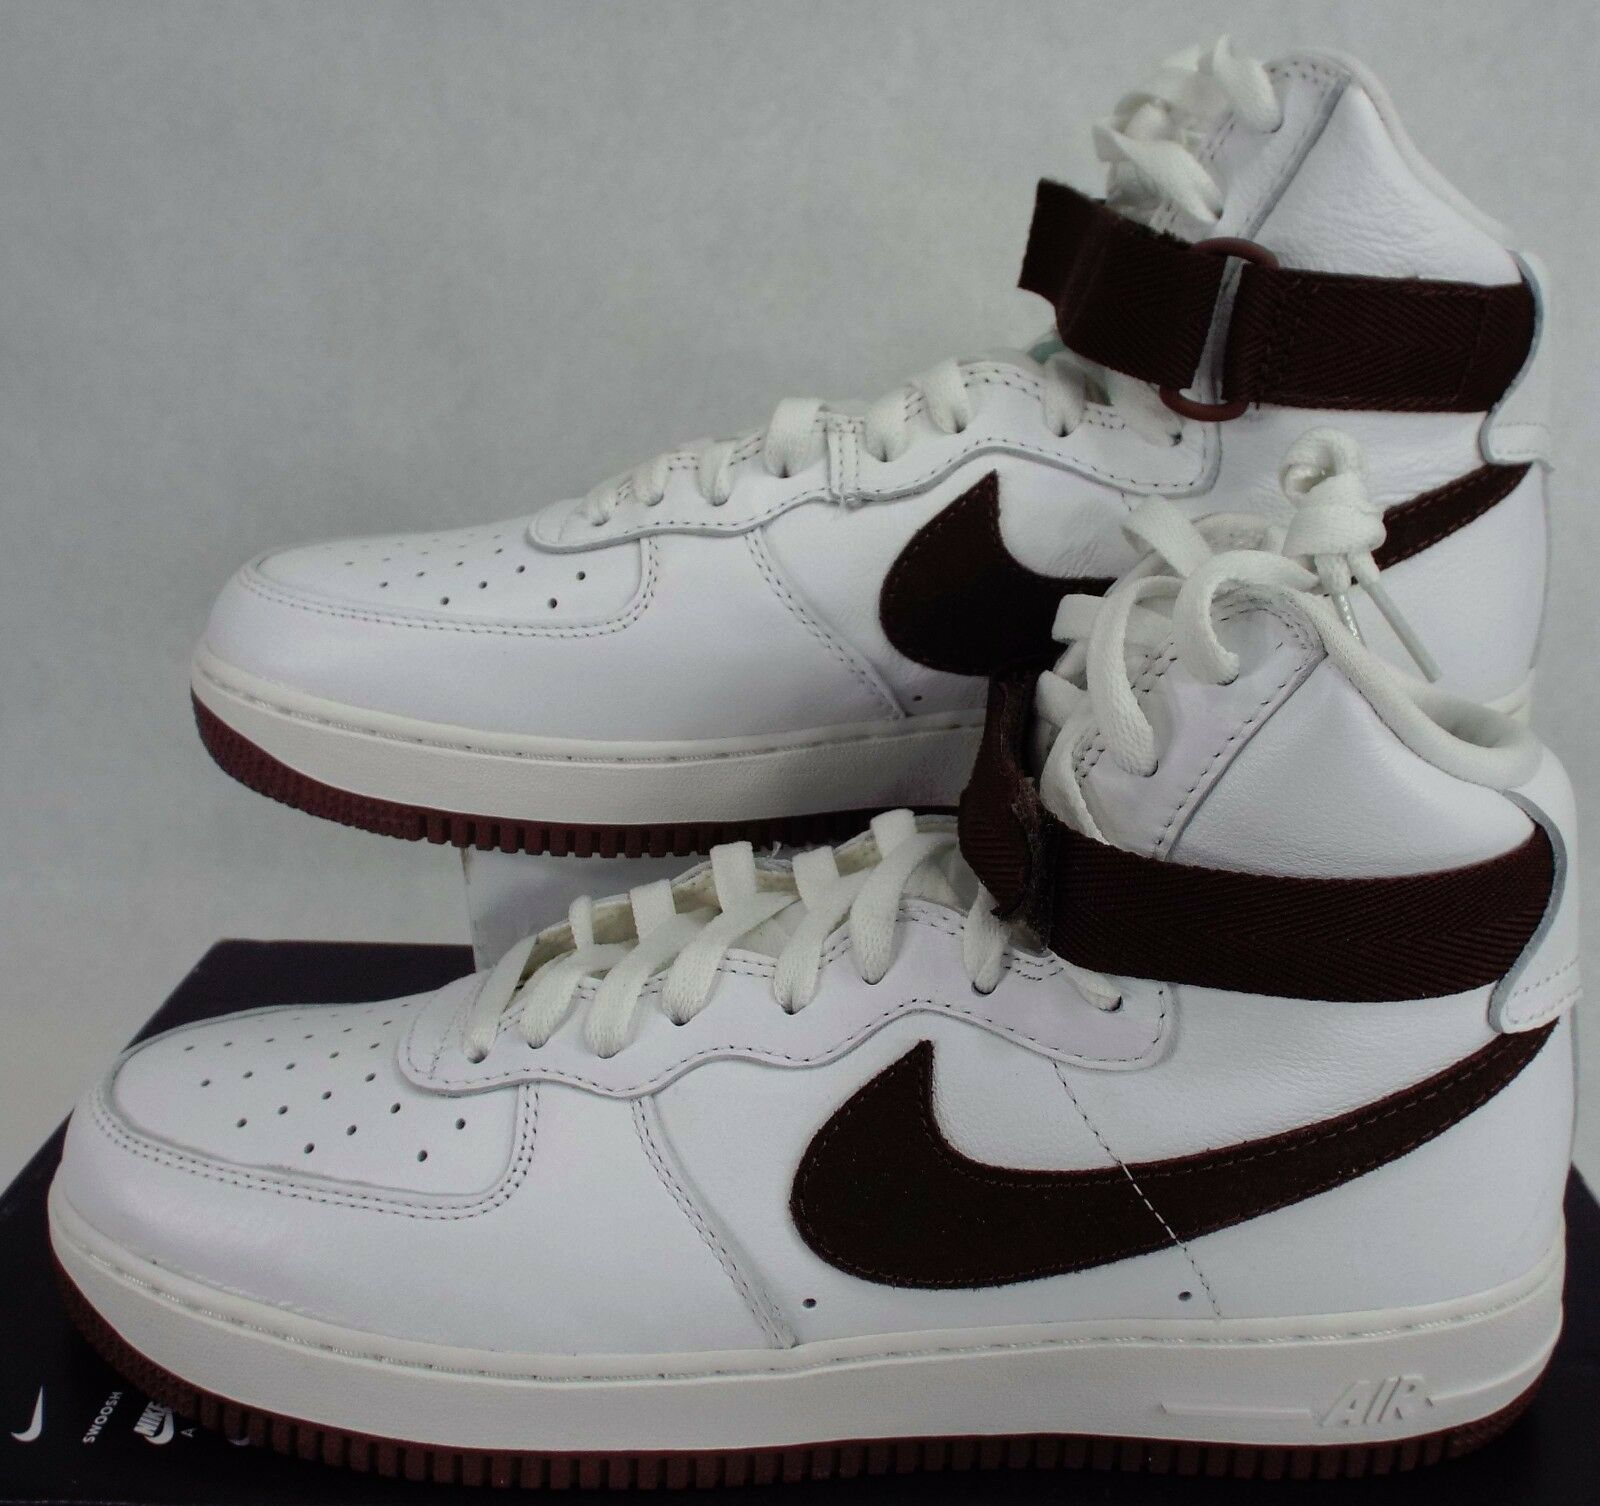 New Mens 11.5 Nike Air Force 1 Hi Retro QS White Leather Shoes743546-102